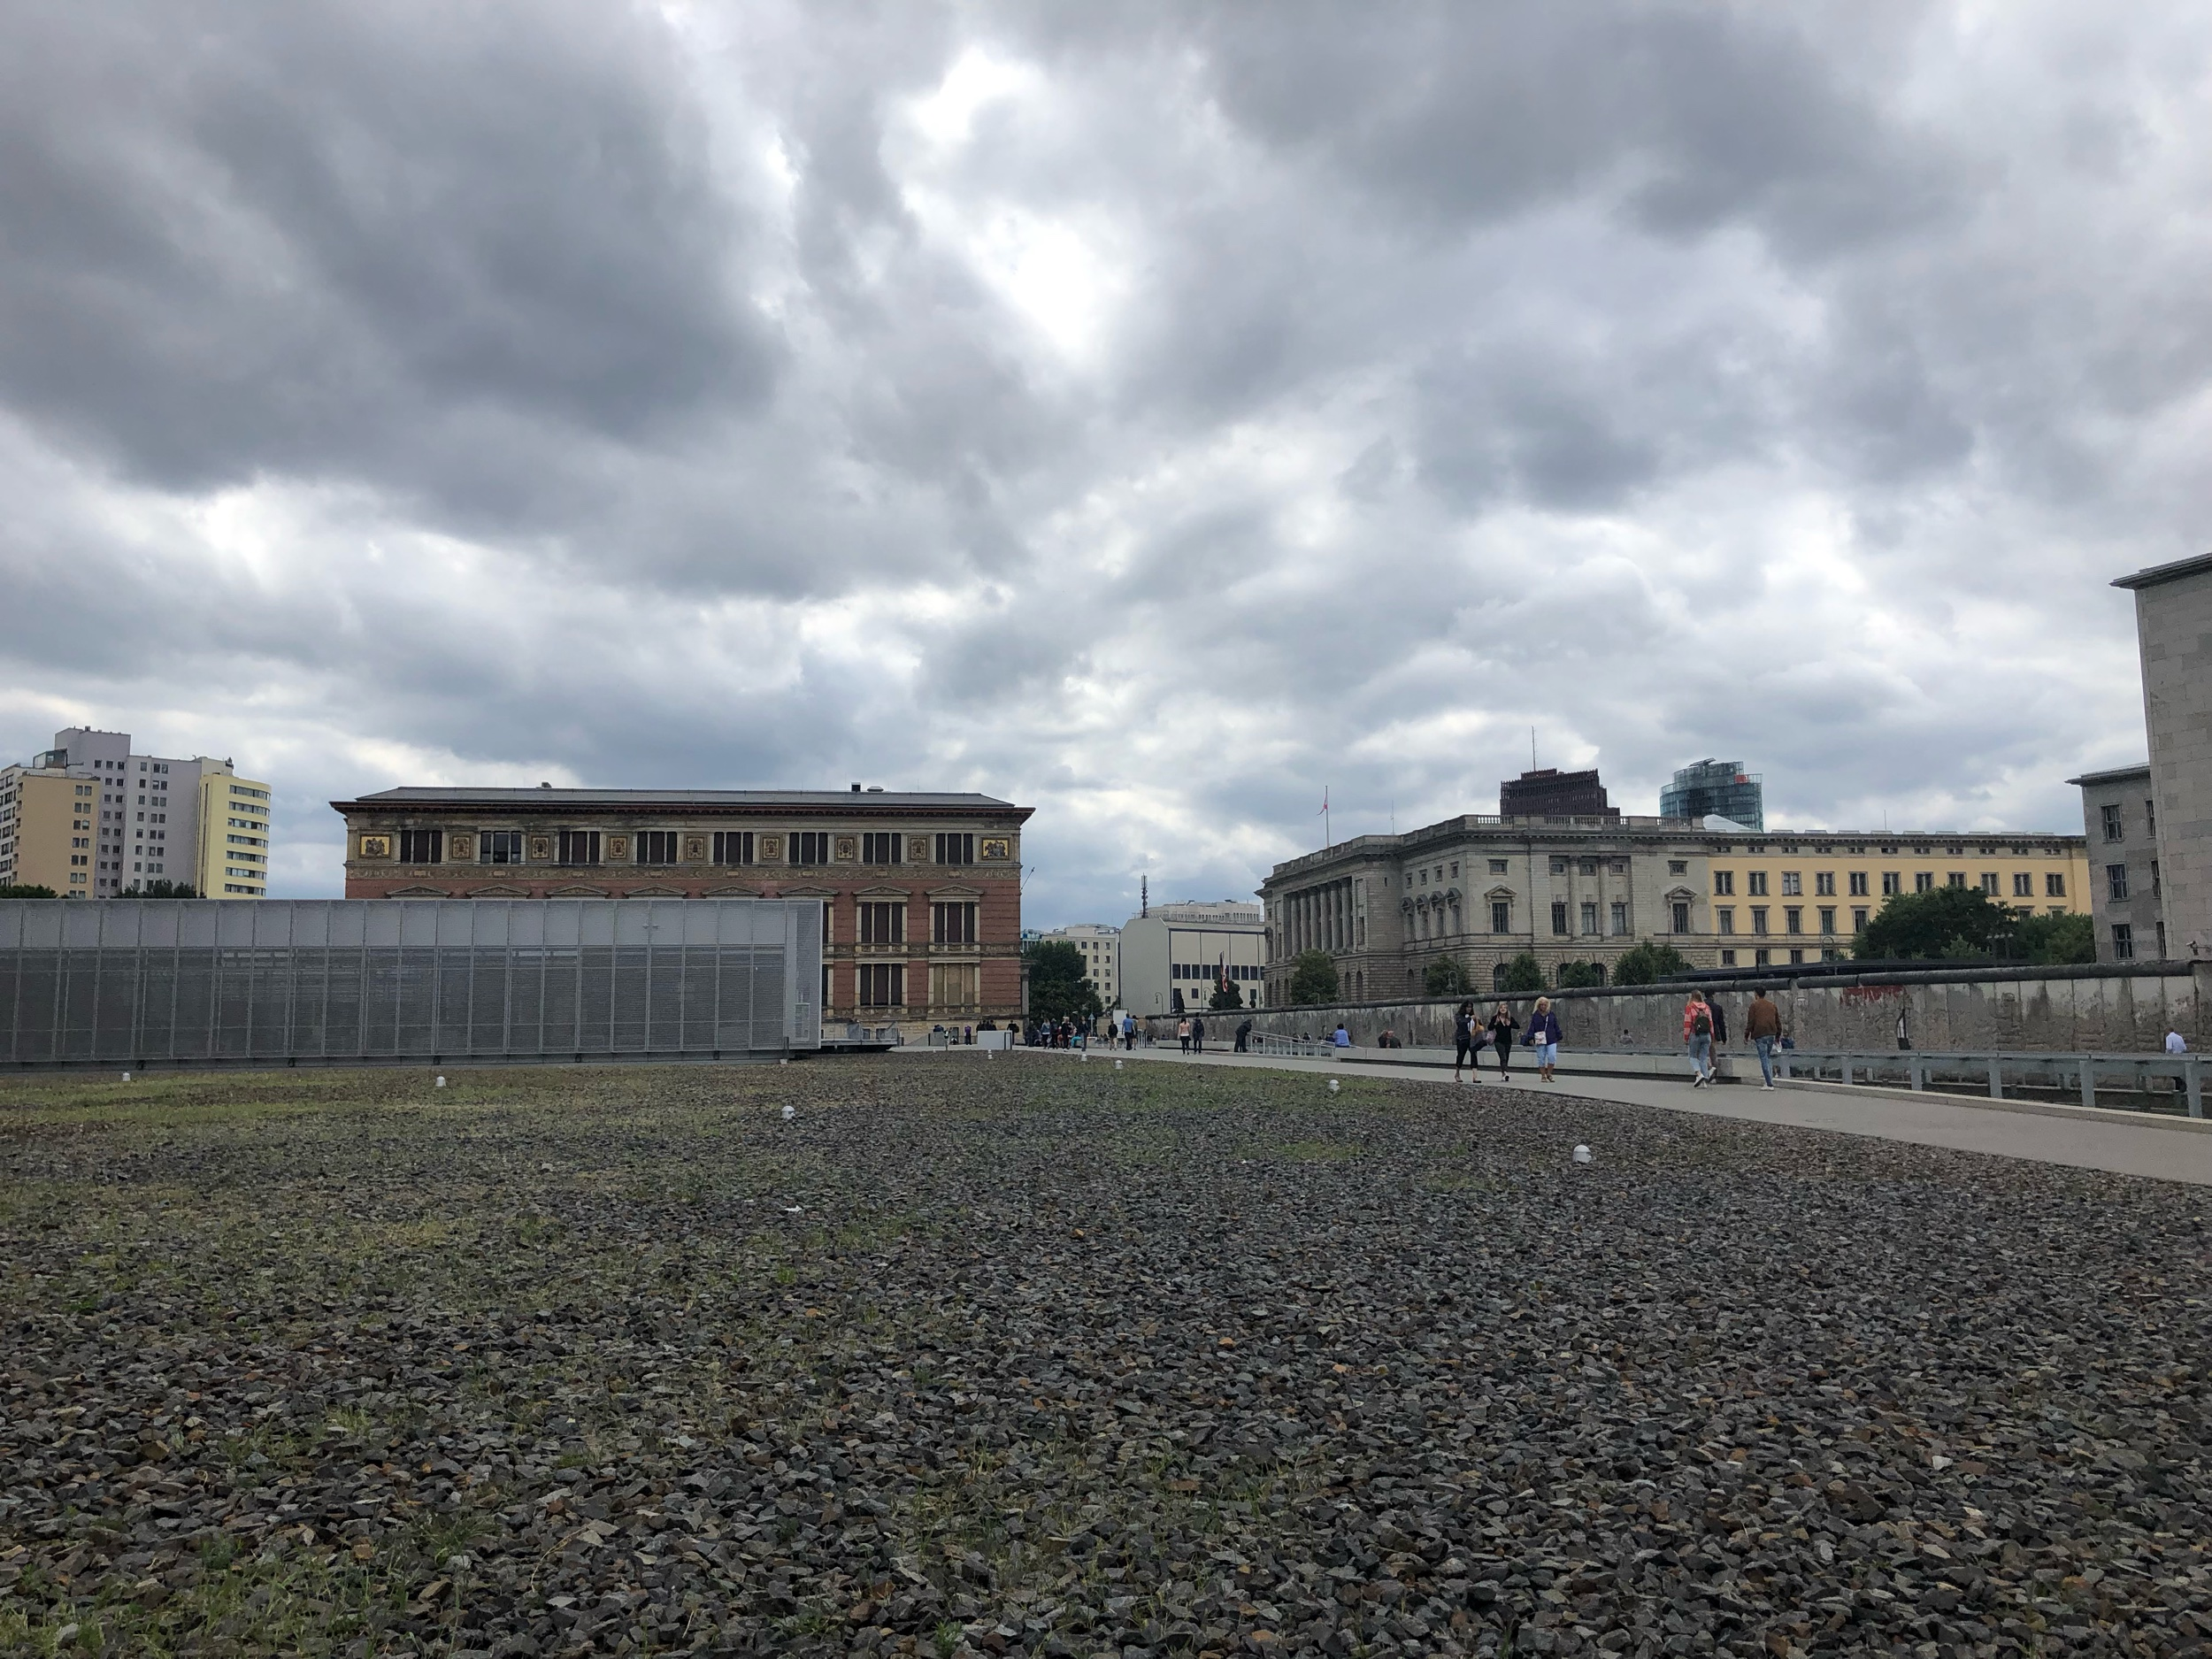 The lower silver building is the Topography of Terror. This location houses the headquarters of the Gestapo. Here you can also see a part of the Berlin Wall, and simultaneously view East and West Berlin.